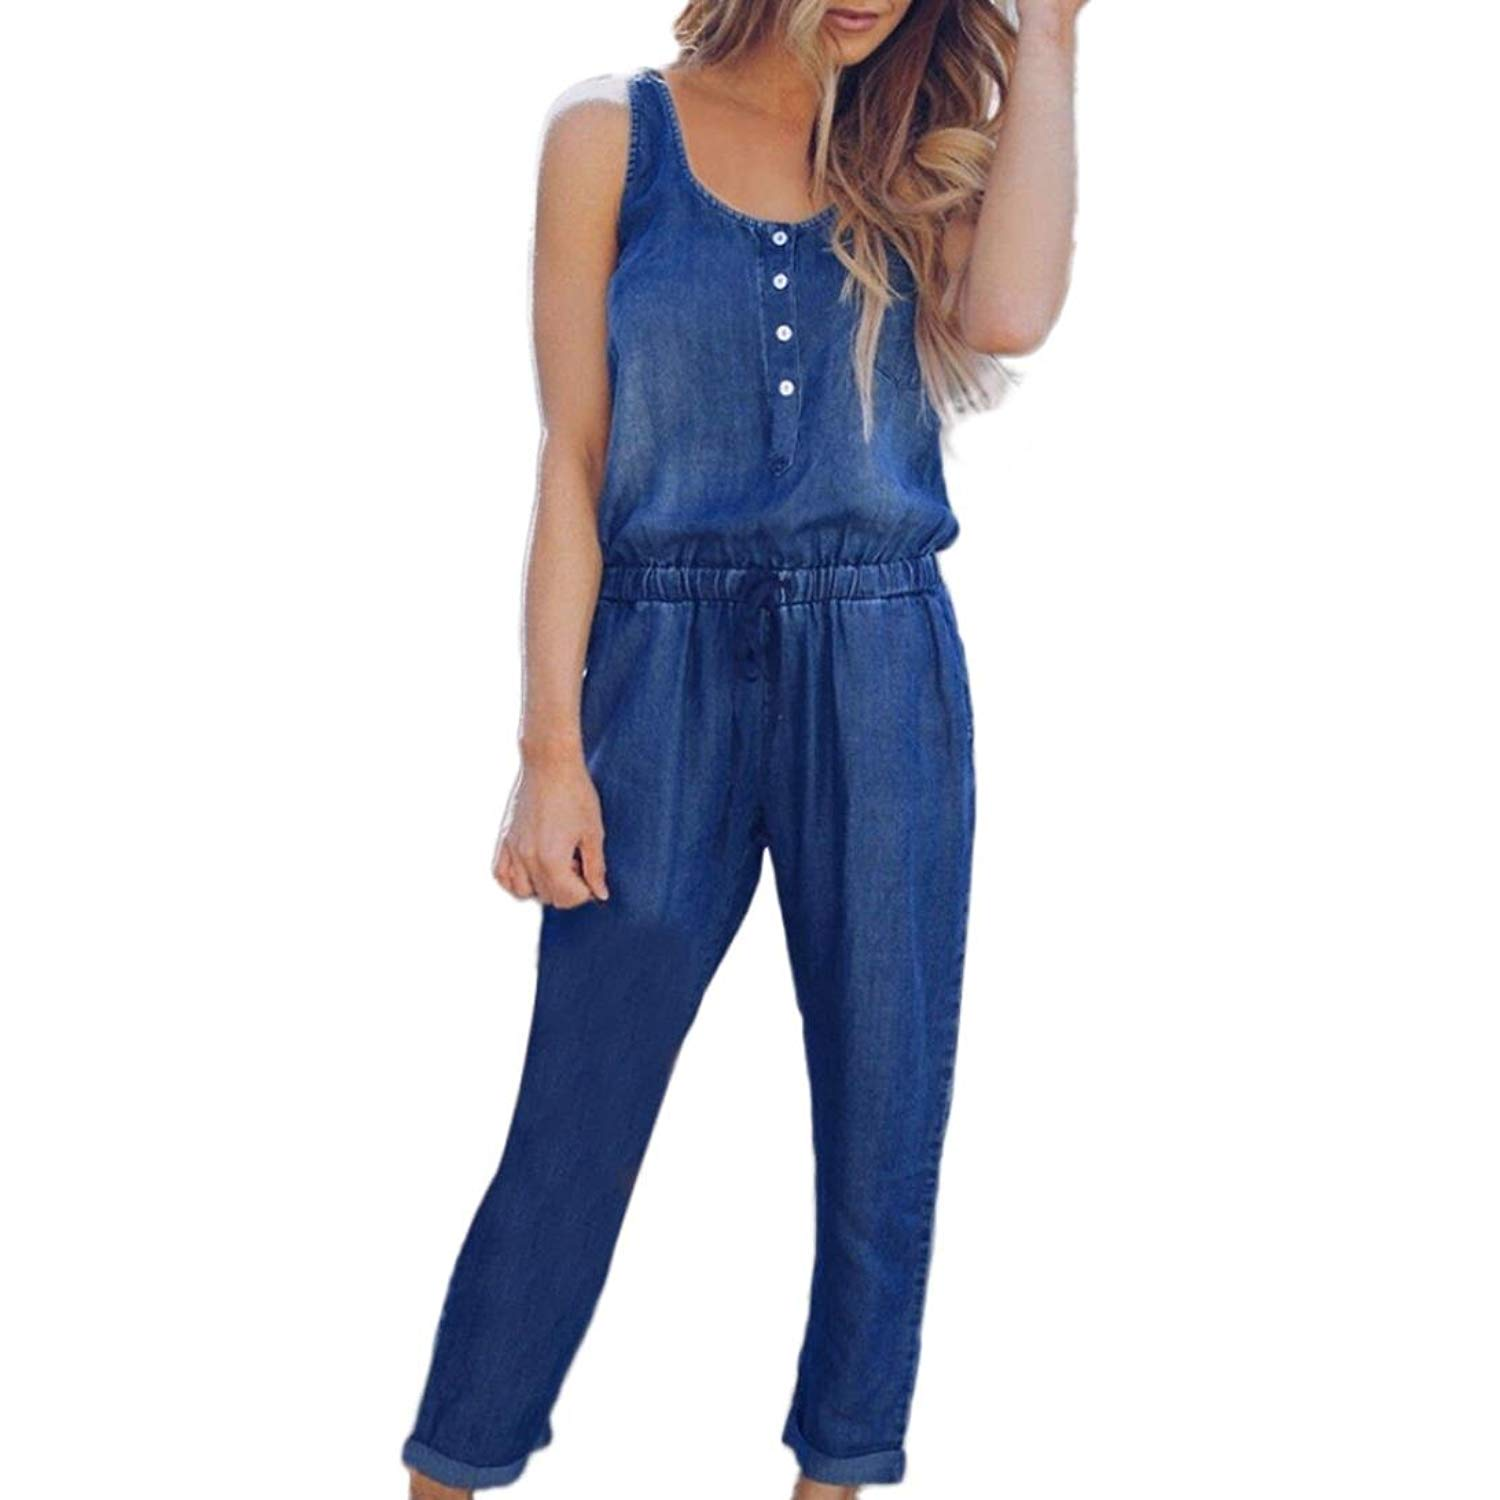 f325a4a1f0f Get Quotations · Gyoume Jeans Demin Jumpsuit